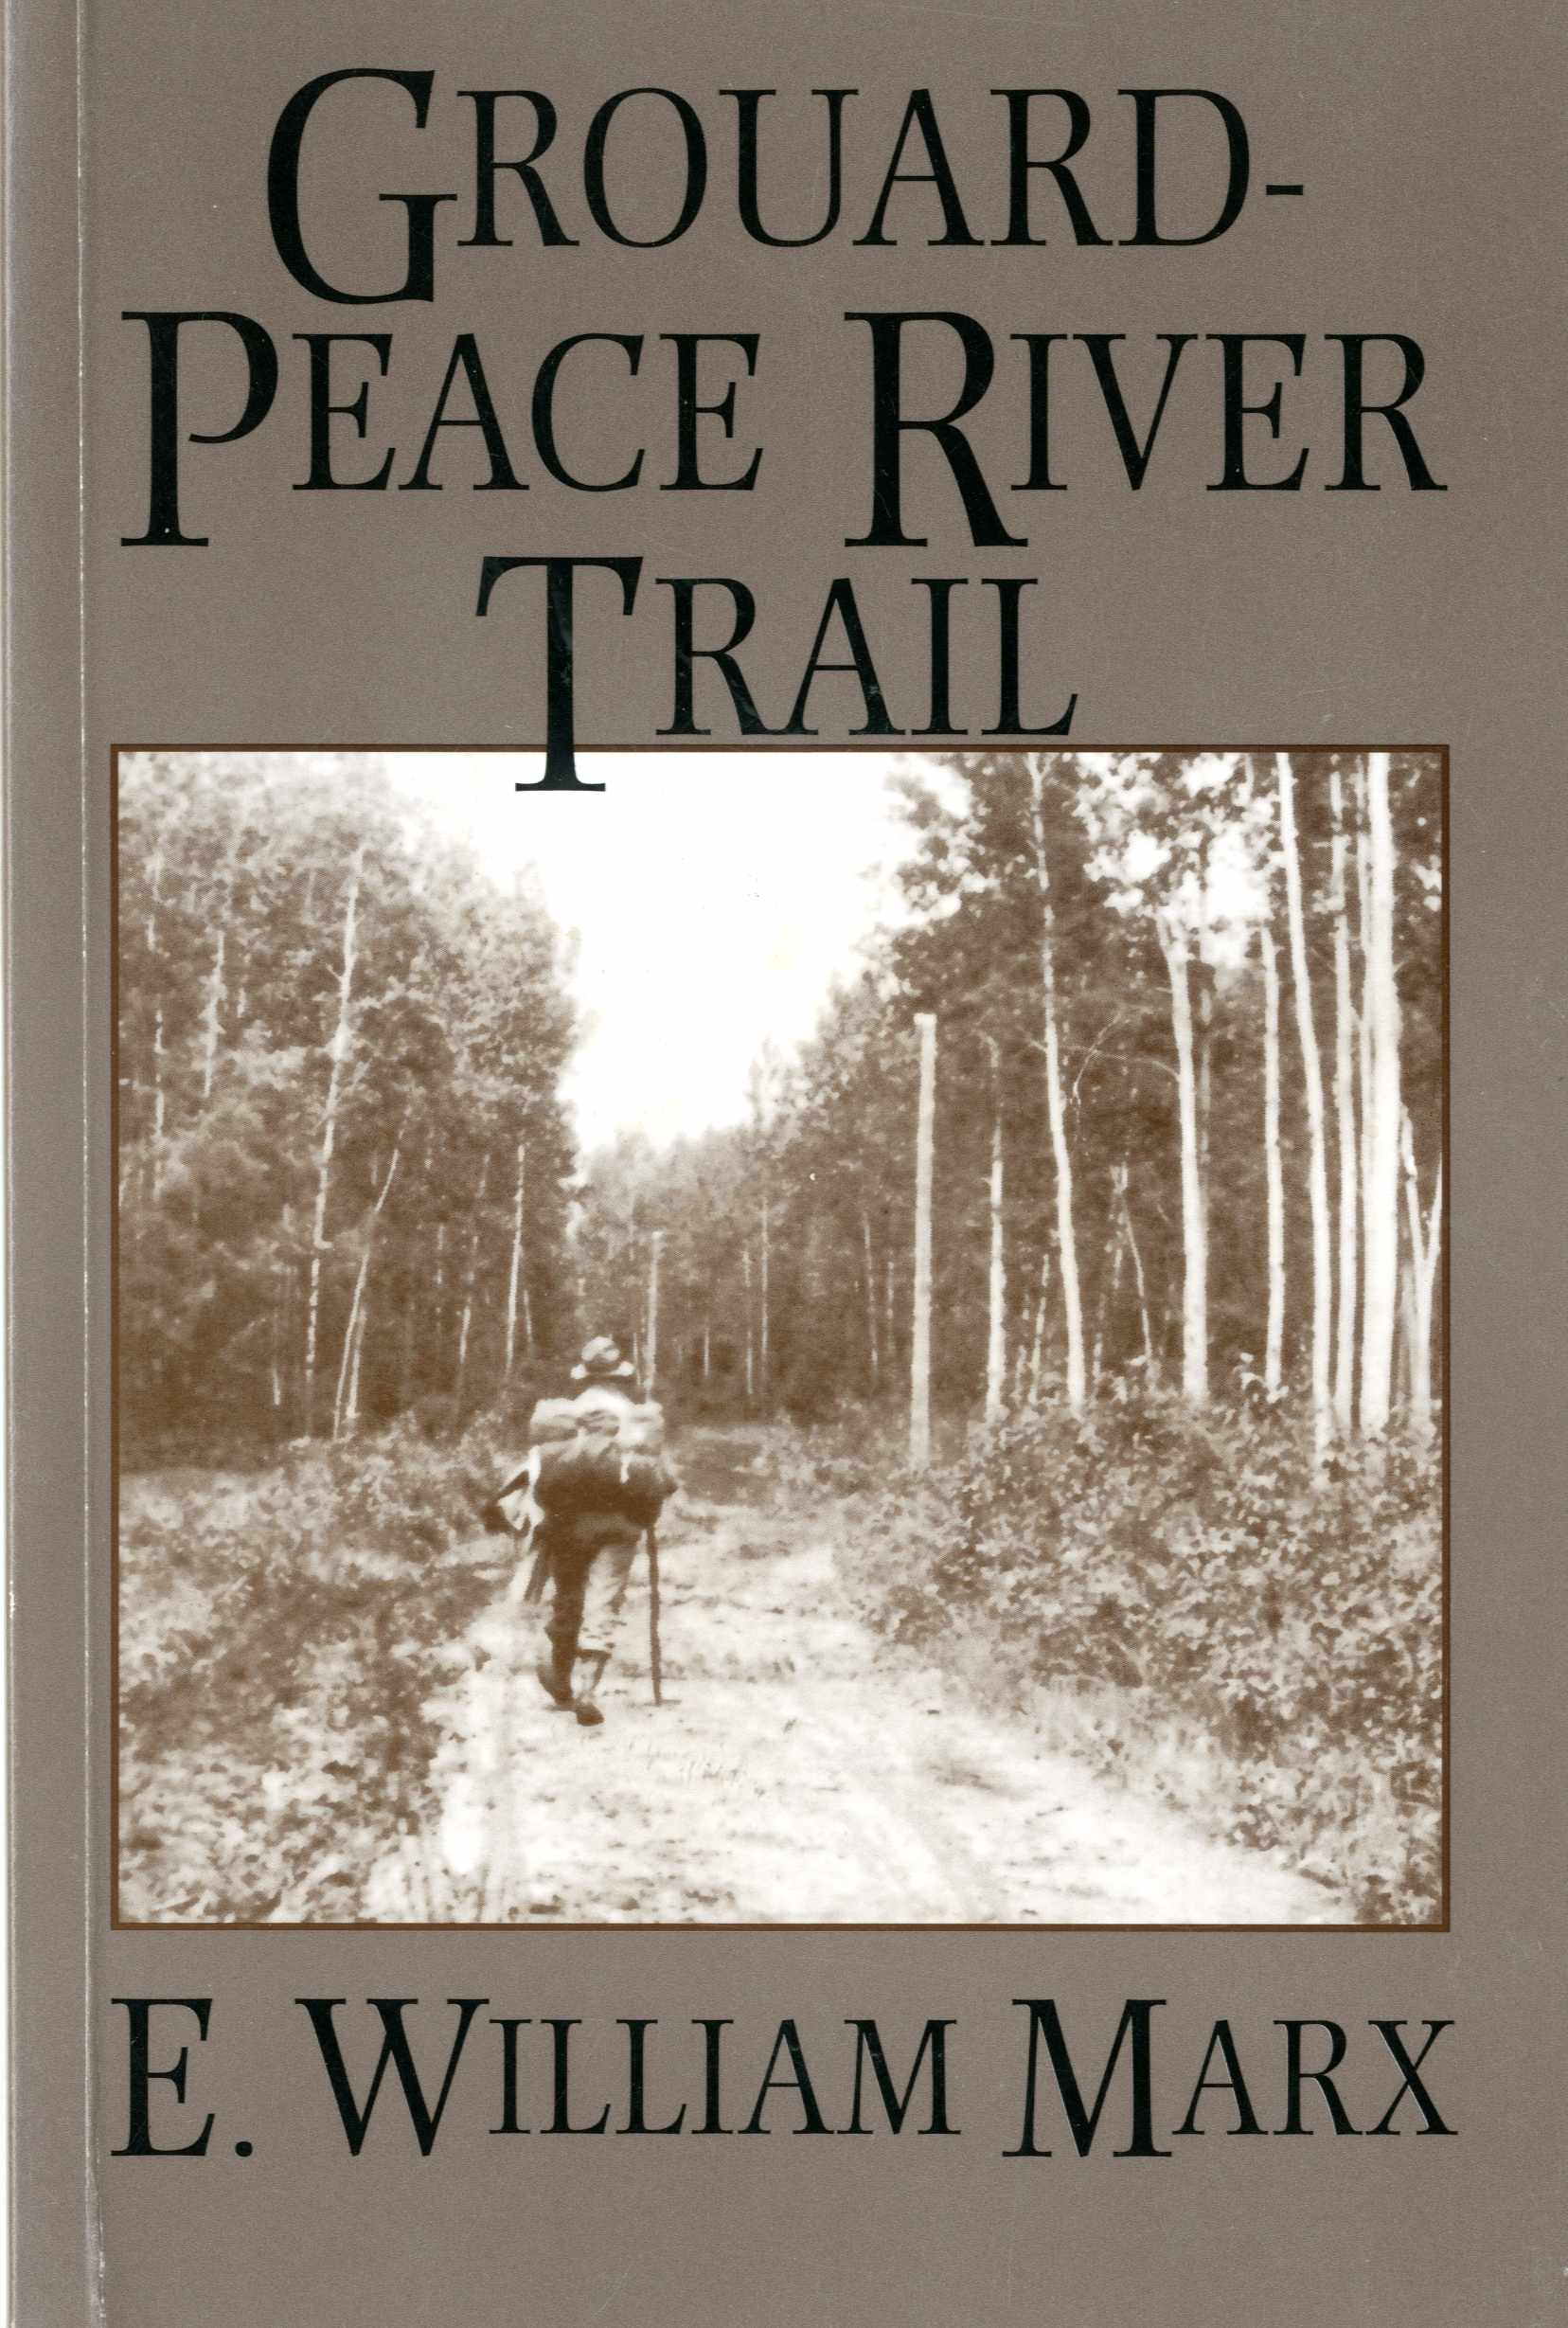 Grouard-Peace River Trail Image